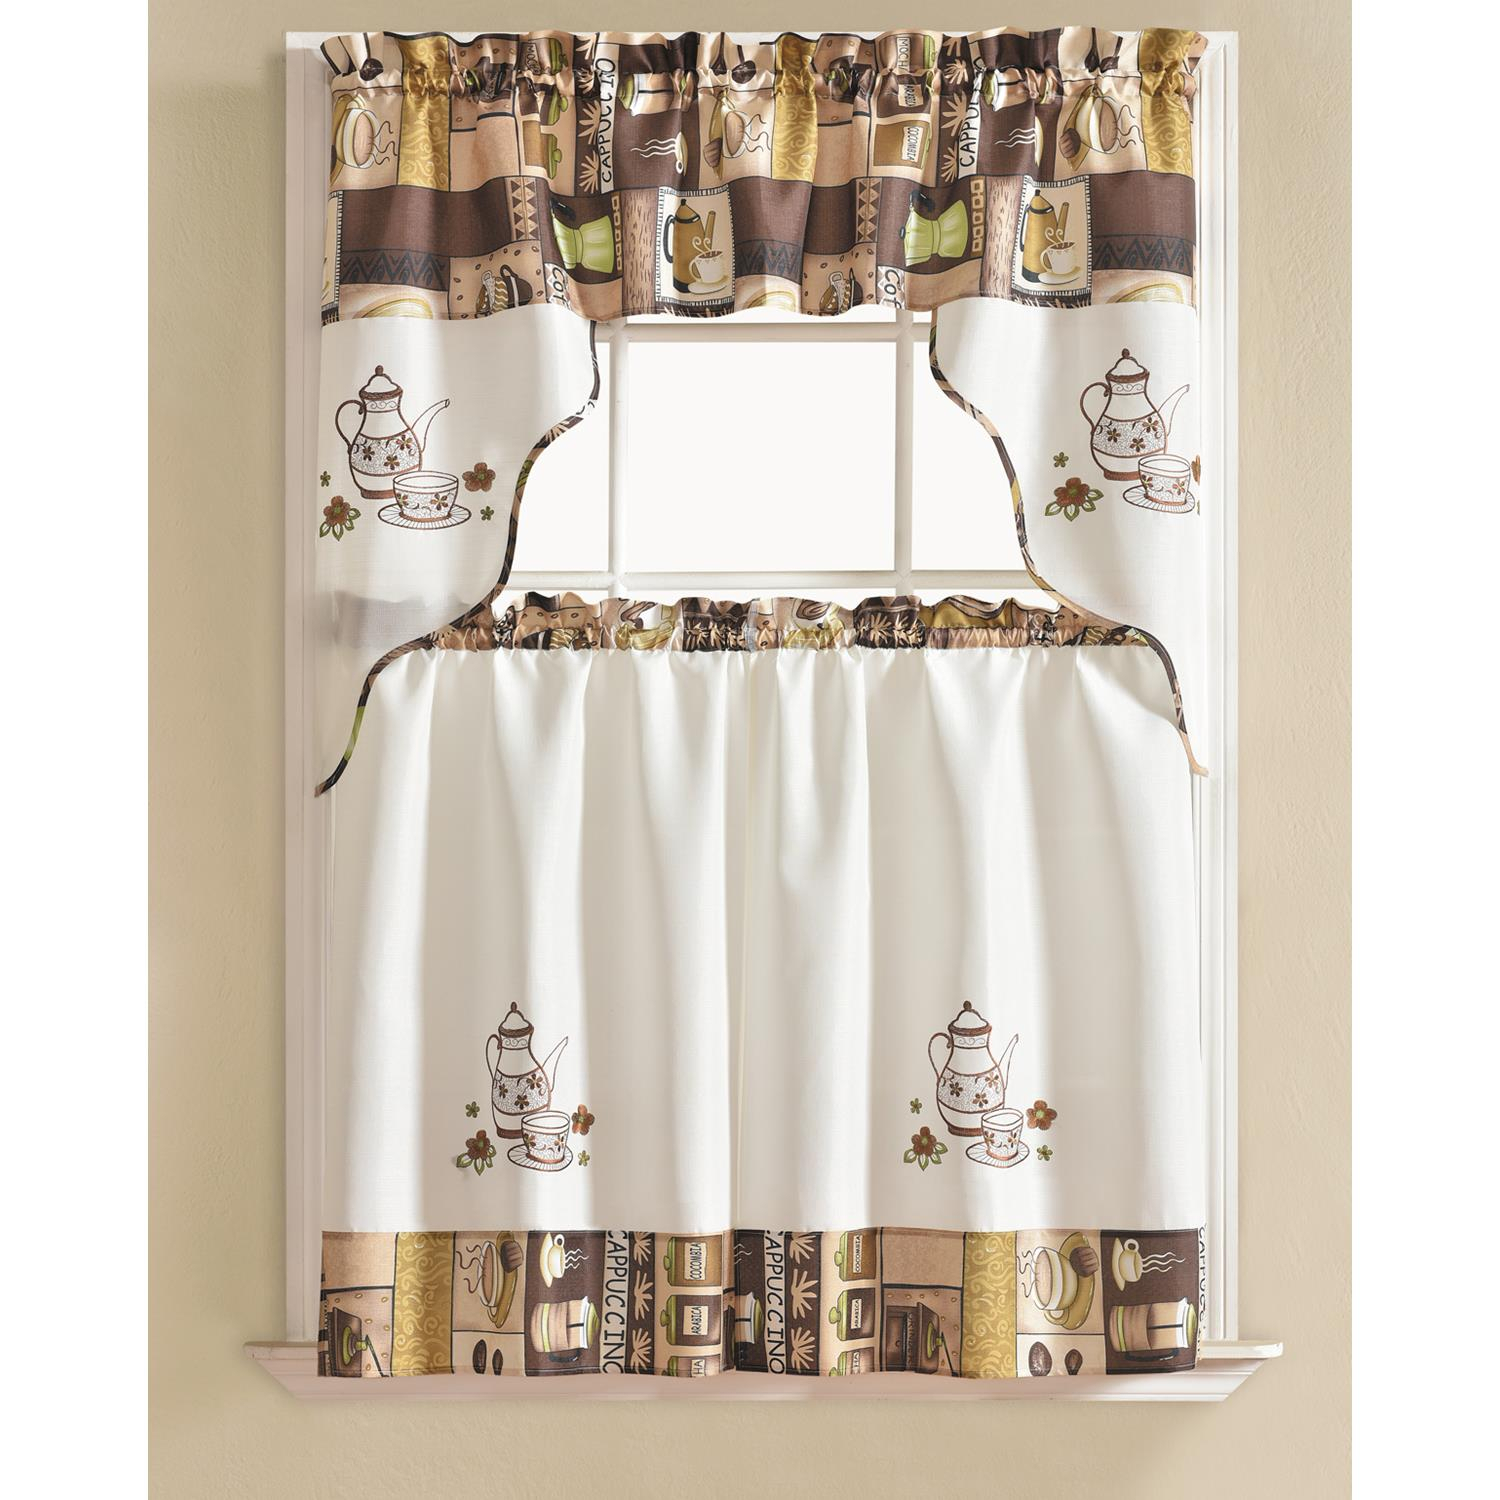 Details About Urban Embroidered Coffee Tier And Valance Kitchen Curtain Set Throughout Traditional Tailored Window Curtains With Embroidered Yellow Sunflowers (View 10 of 20)